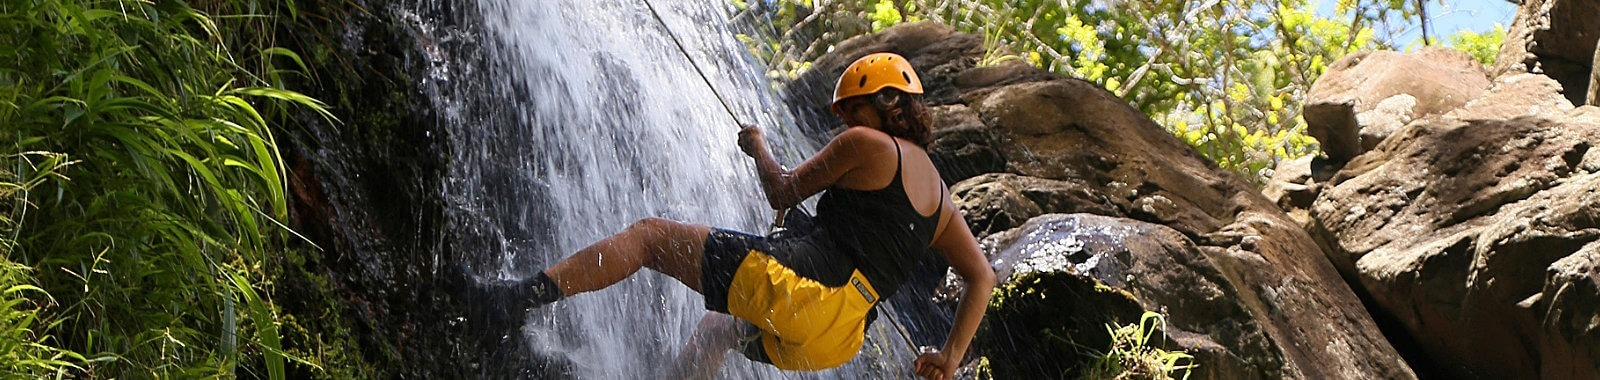 Rappeling Safety